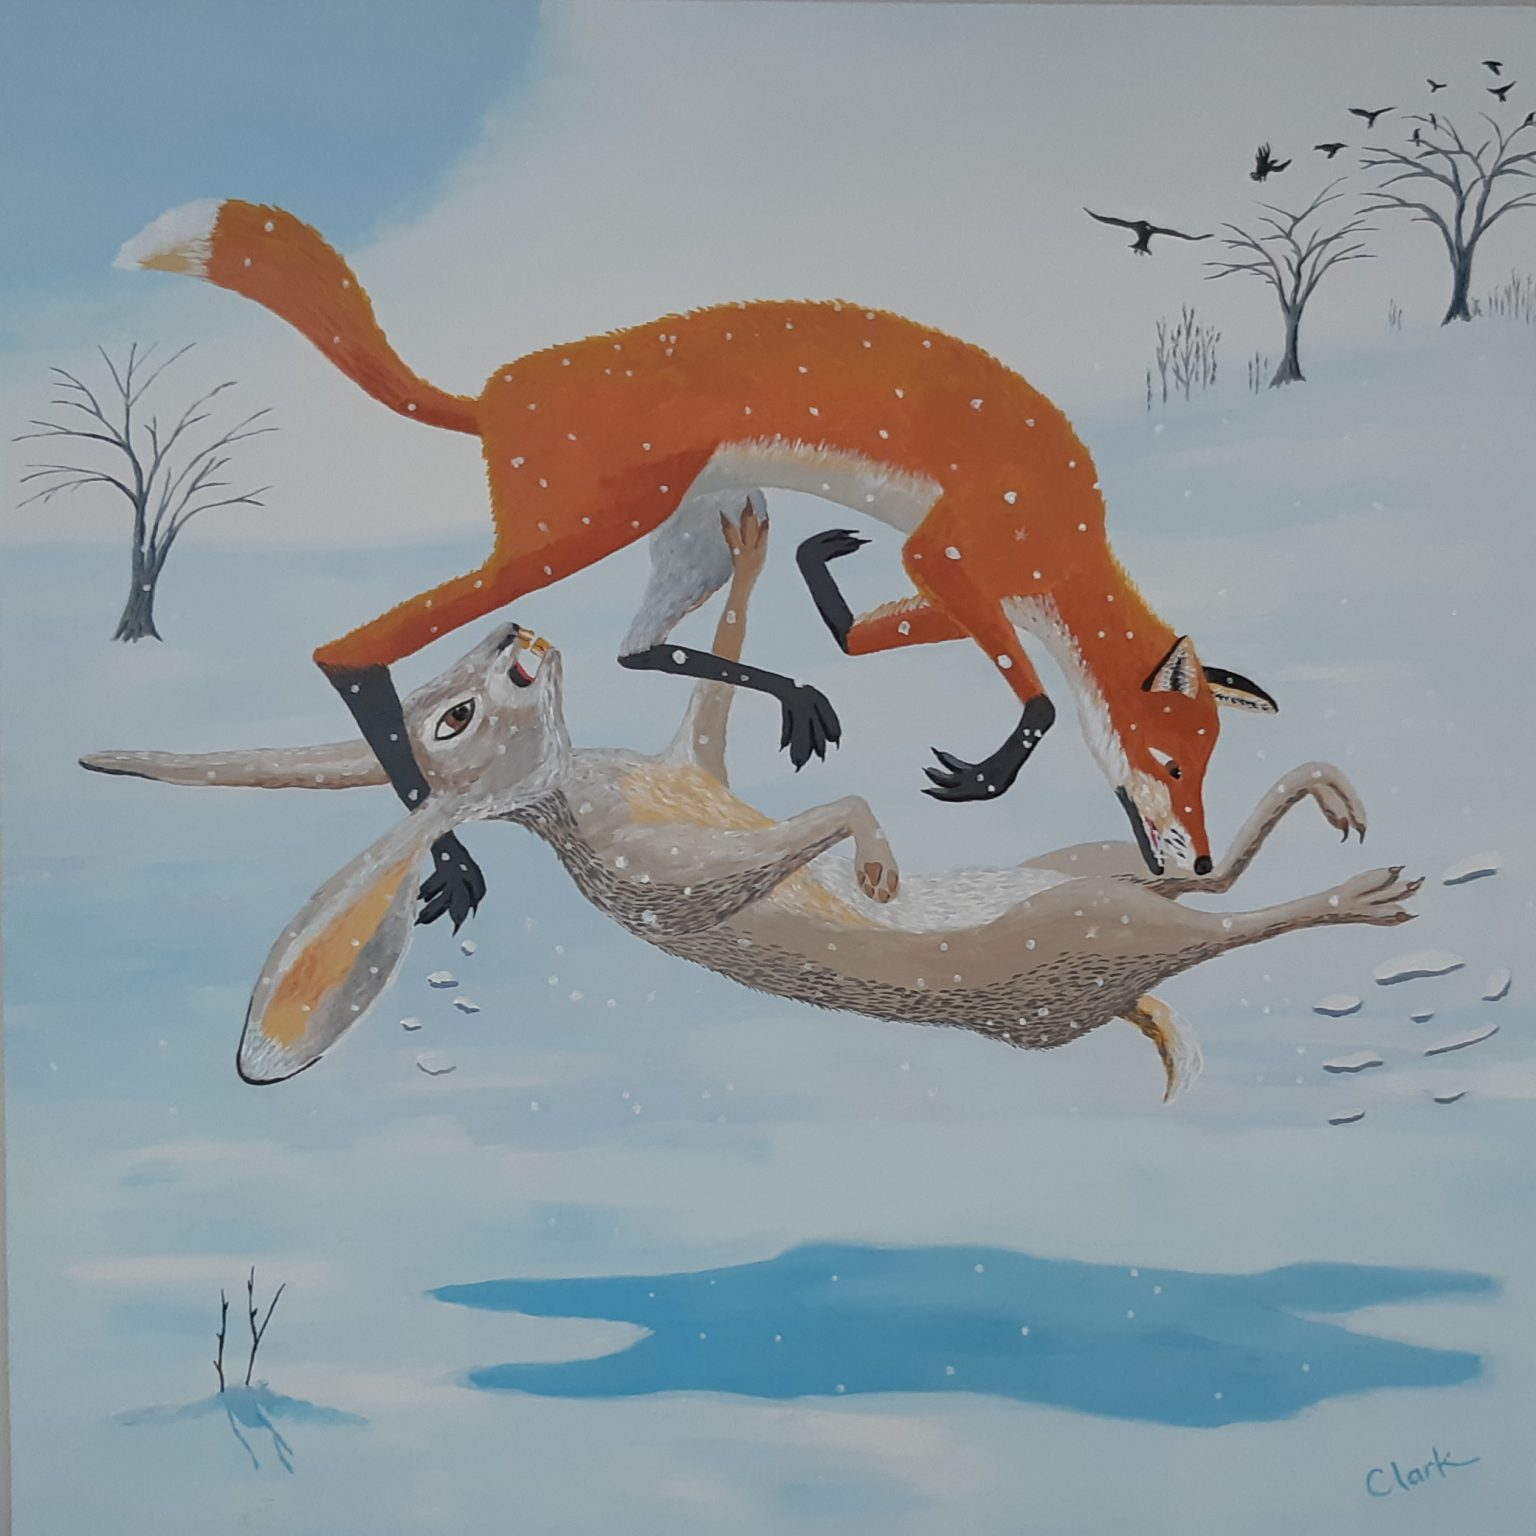 The Fox and the Rabbit by Bev Clark